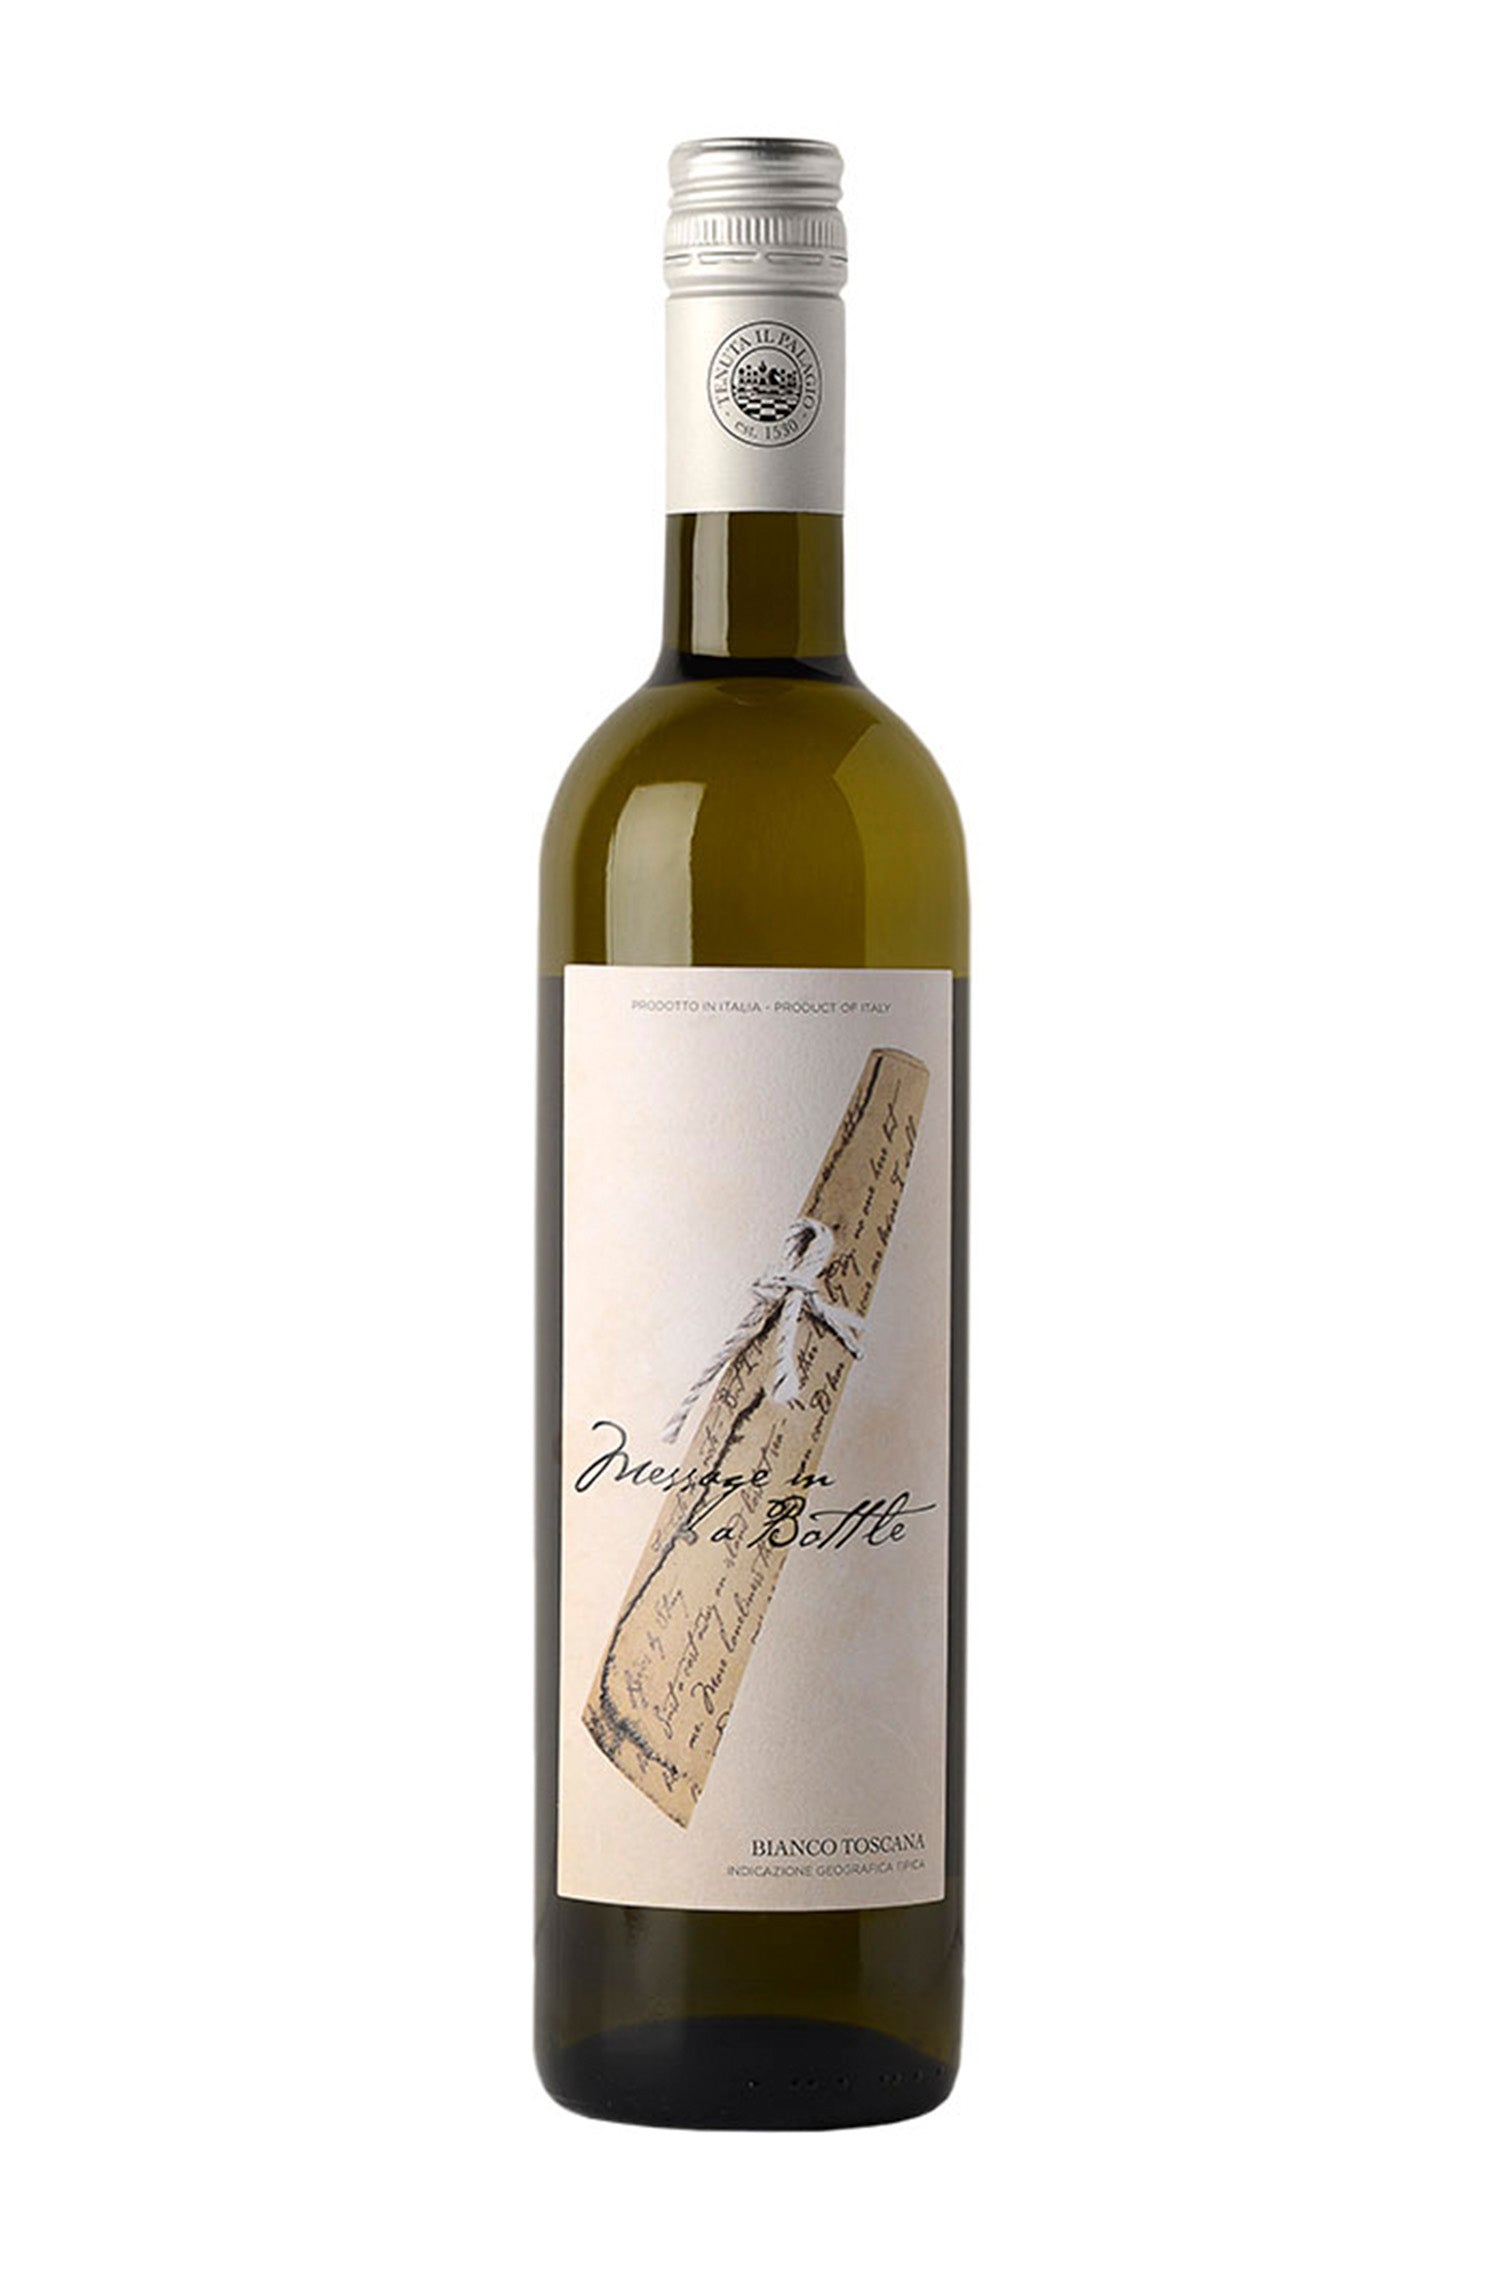 Message in a bottle, White, Organic, Vermentino, 2019 IGT Tuscany, 13%